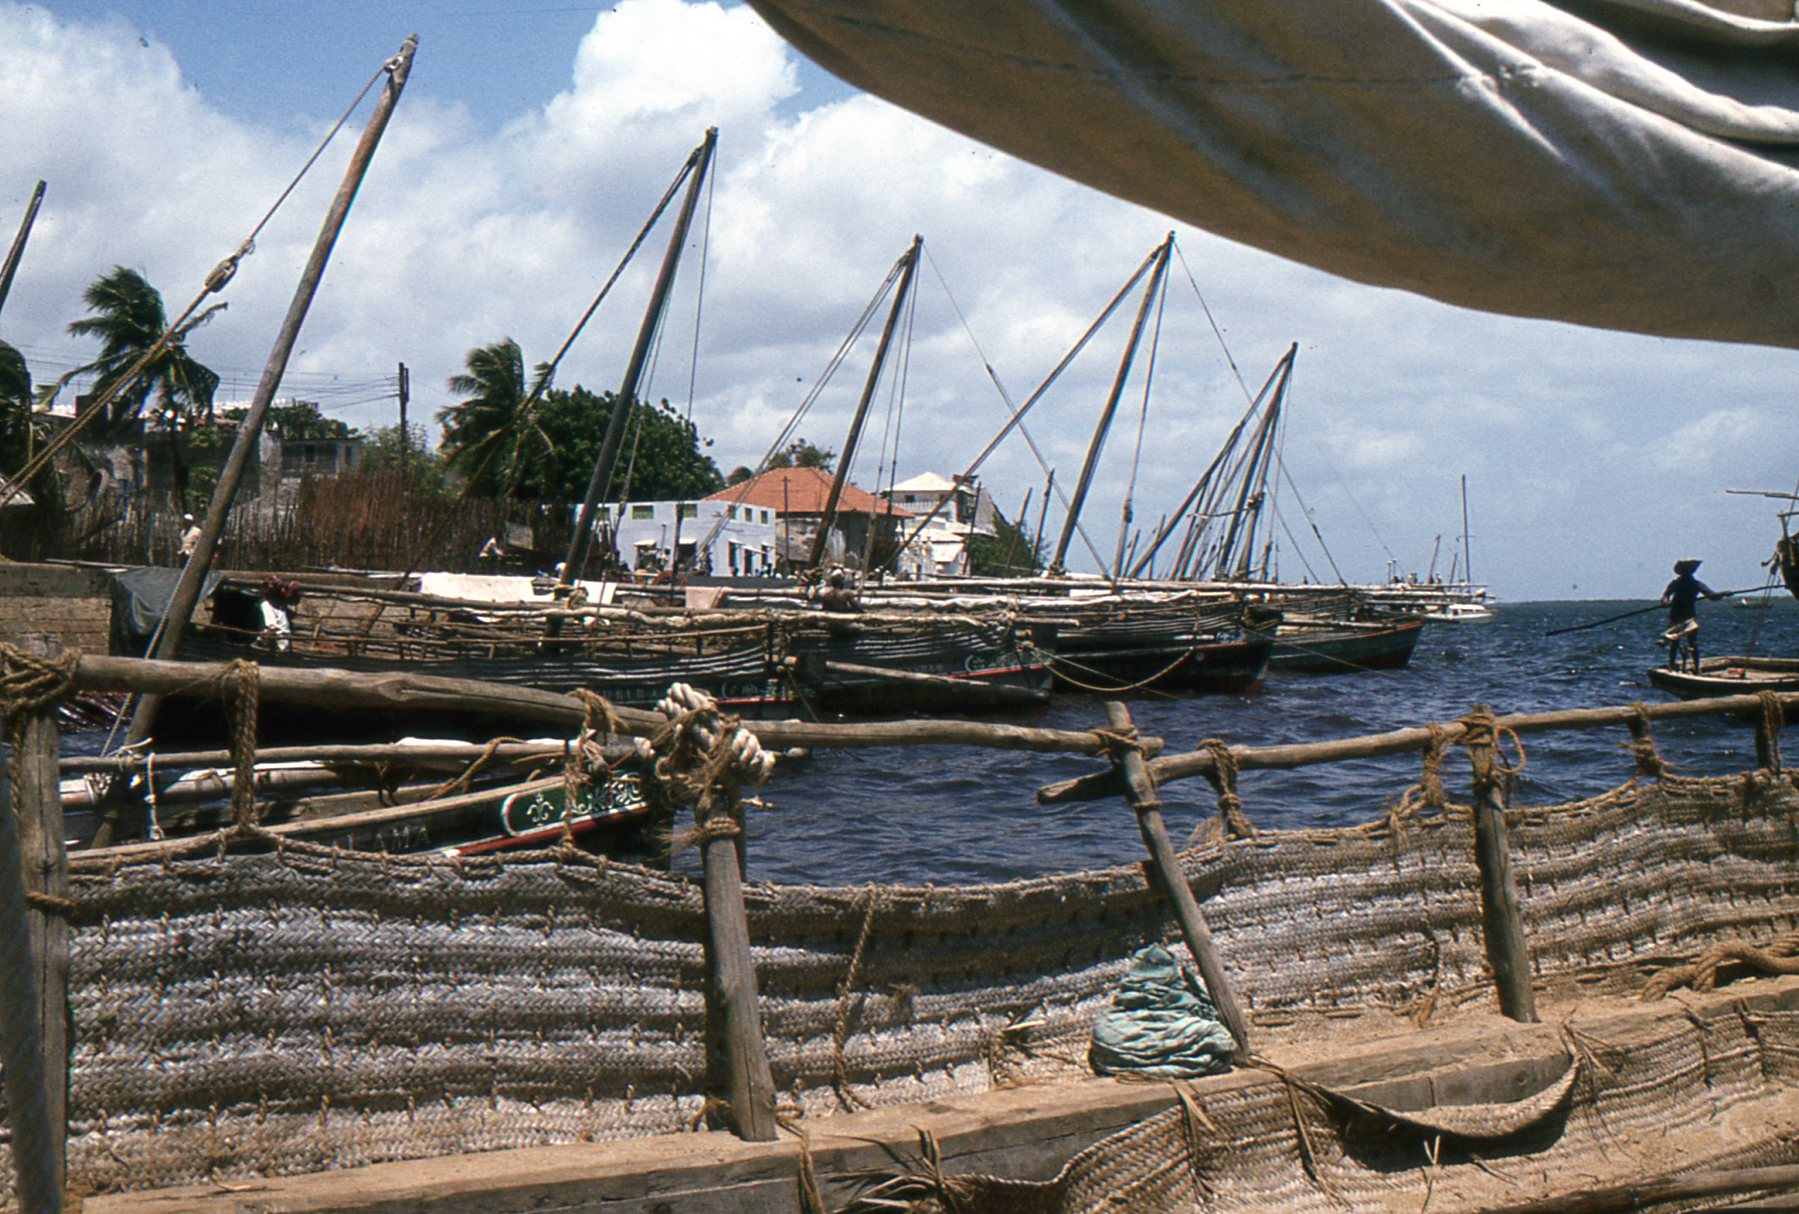 Lamu Town from deck of dhow, off coast of East Africa.